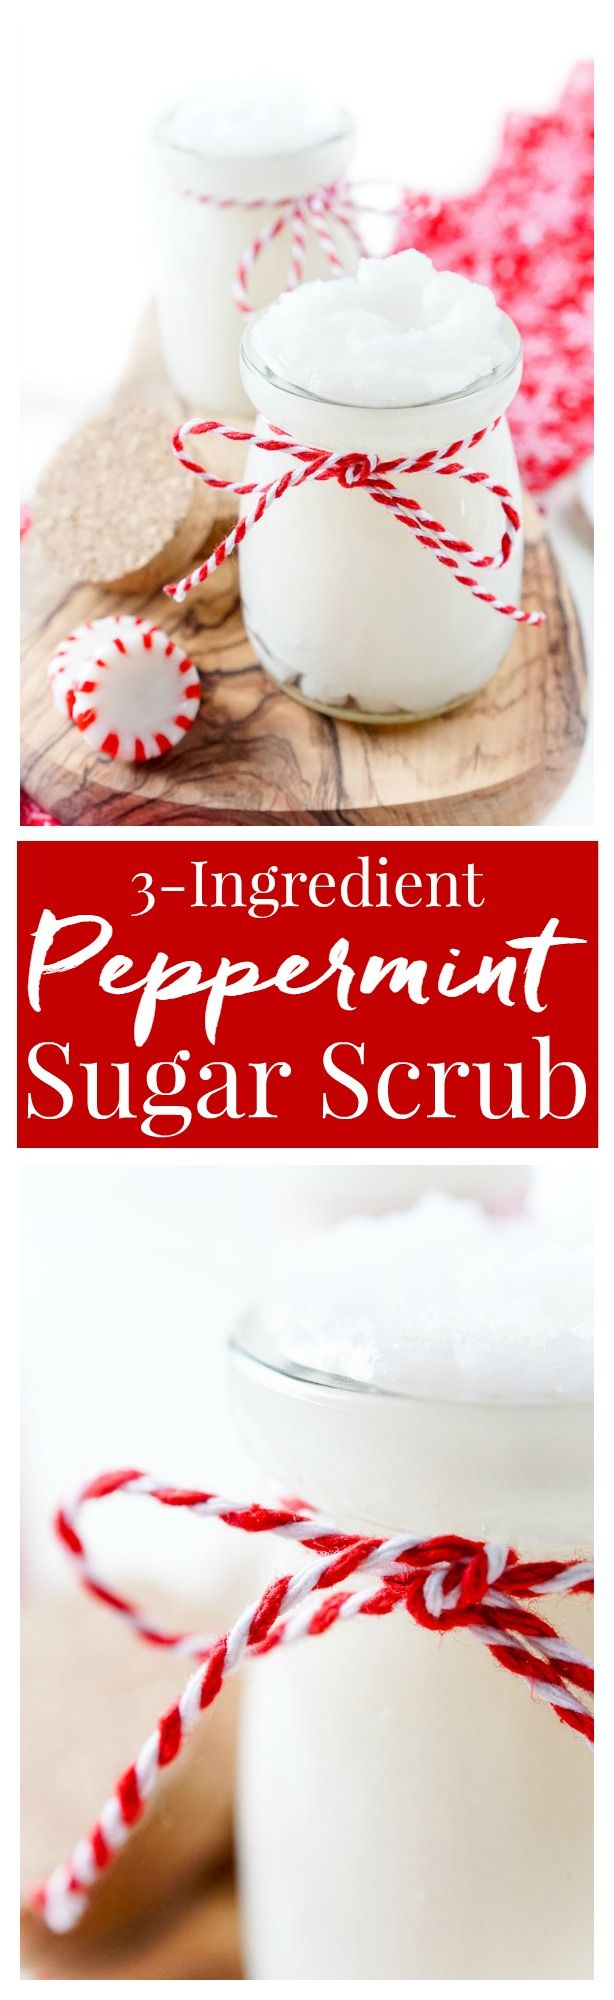 This 3-Ingredient Peppermint Sugar Scrub made my skin feel AMAZING! It's great for soothing tired muscles and reviving dry skin, it's also an easy DIY gift that can be made in less than 10 minutes!